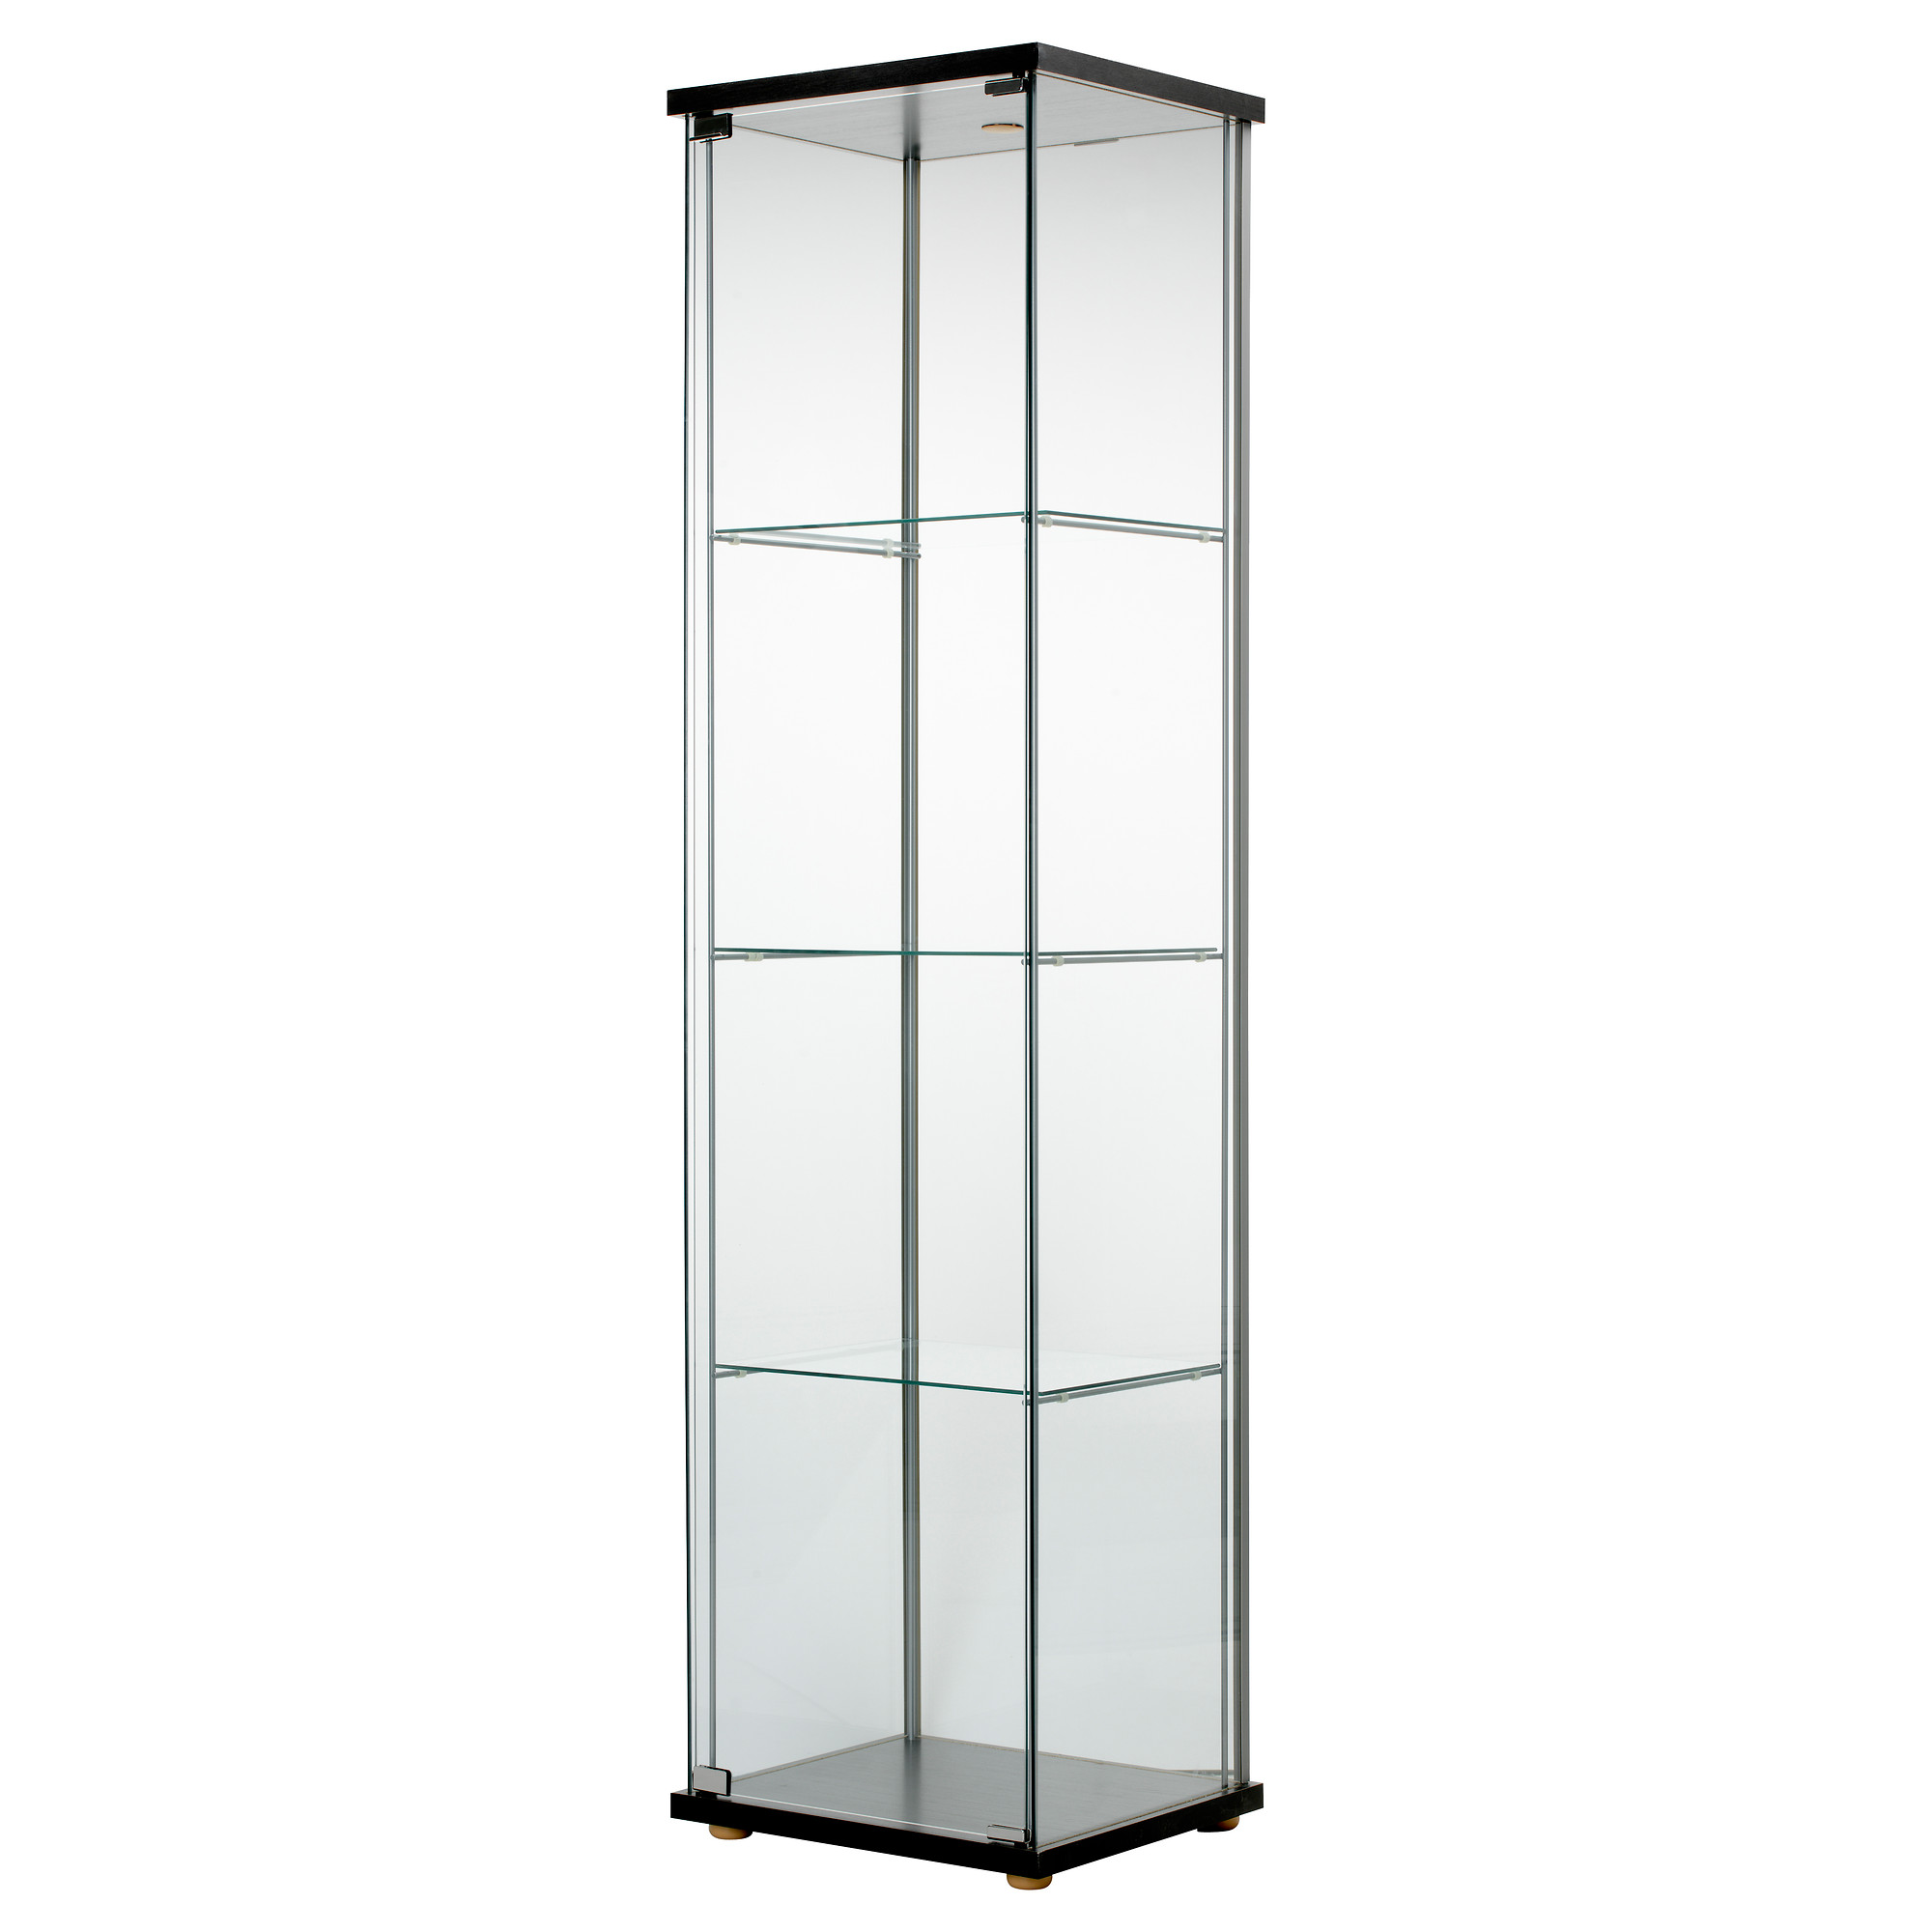 Amazing DETOLF Glass-door cabinet - black-brown - IKEA shelving units with glass doors